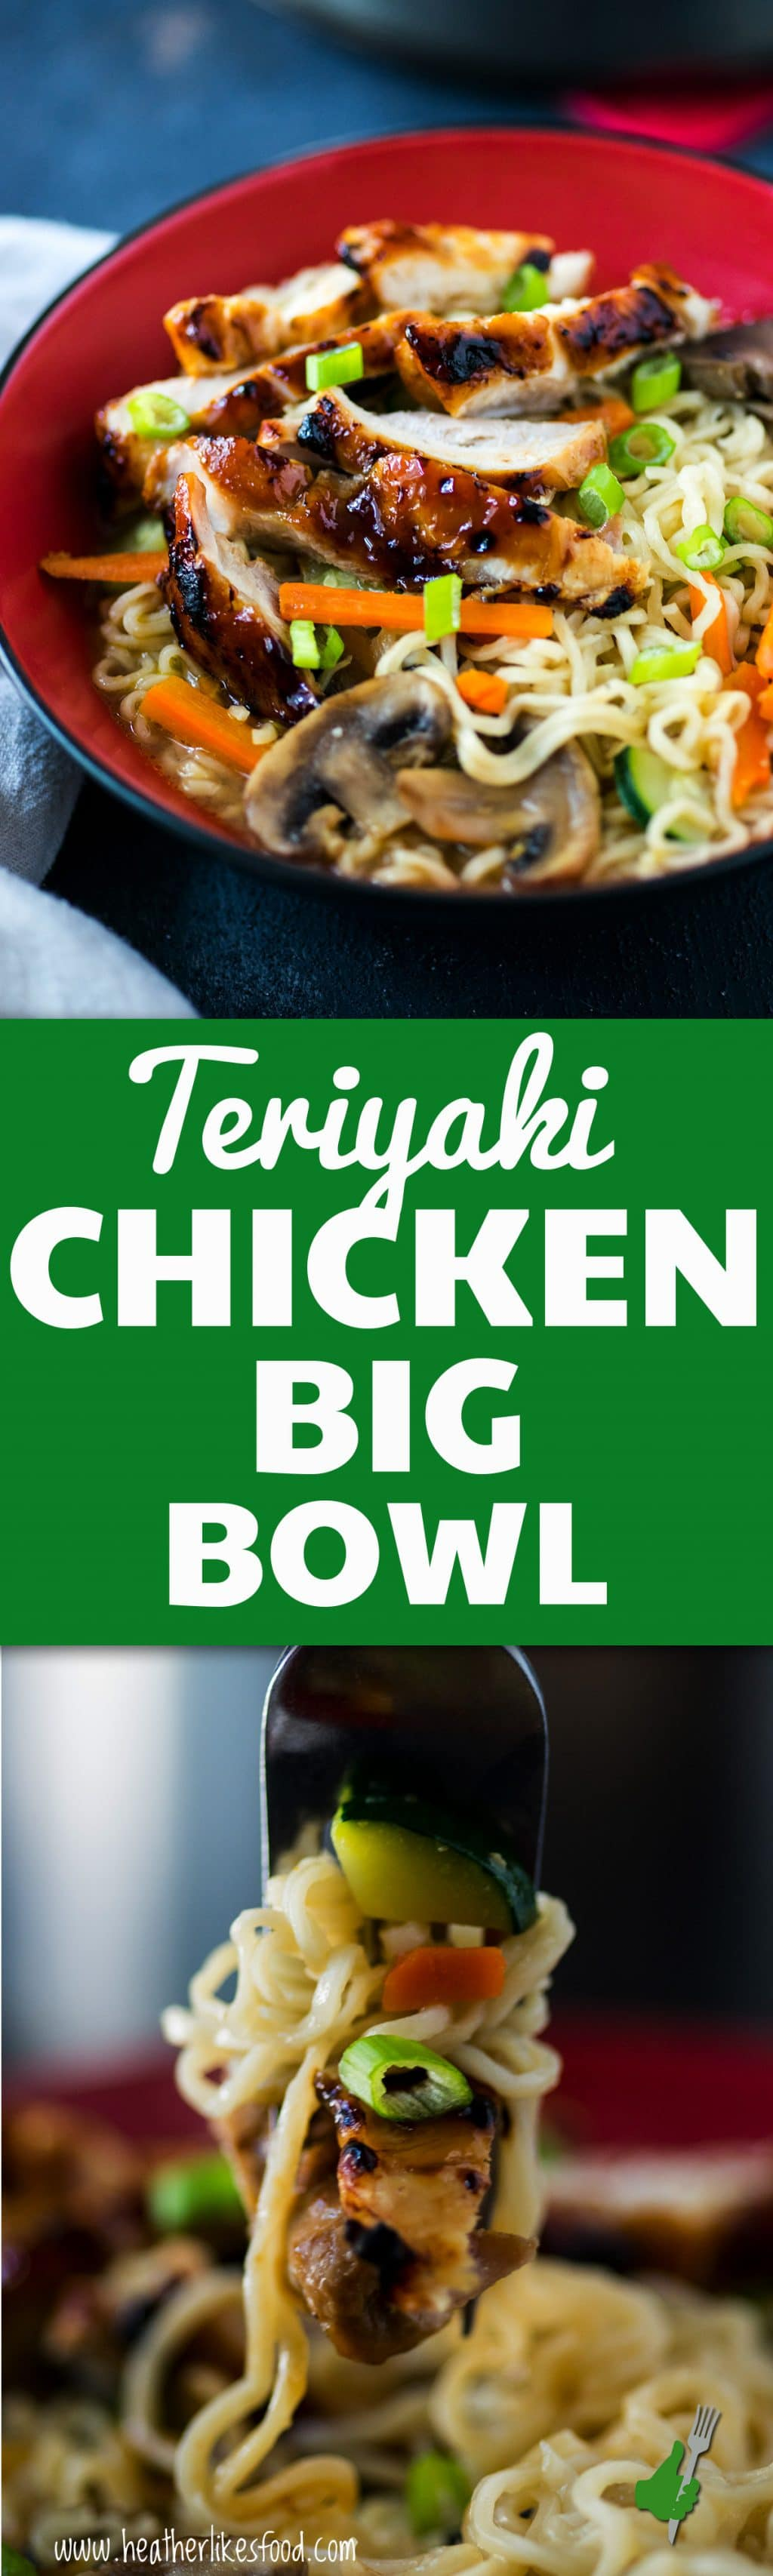 There's so much yum happening in this teriyaki chicken big bowl. Sticky, sweet chicken, hot broth, veggies and tender slurp-able noodles. So good and easy!